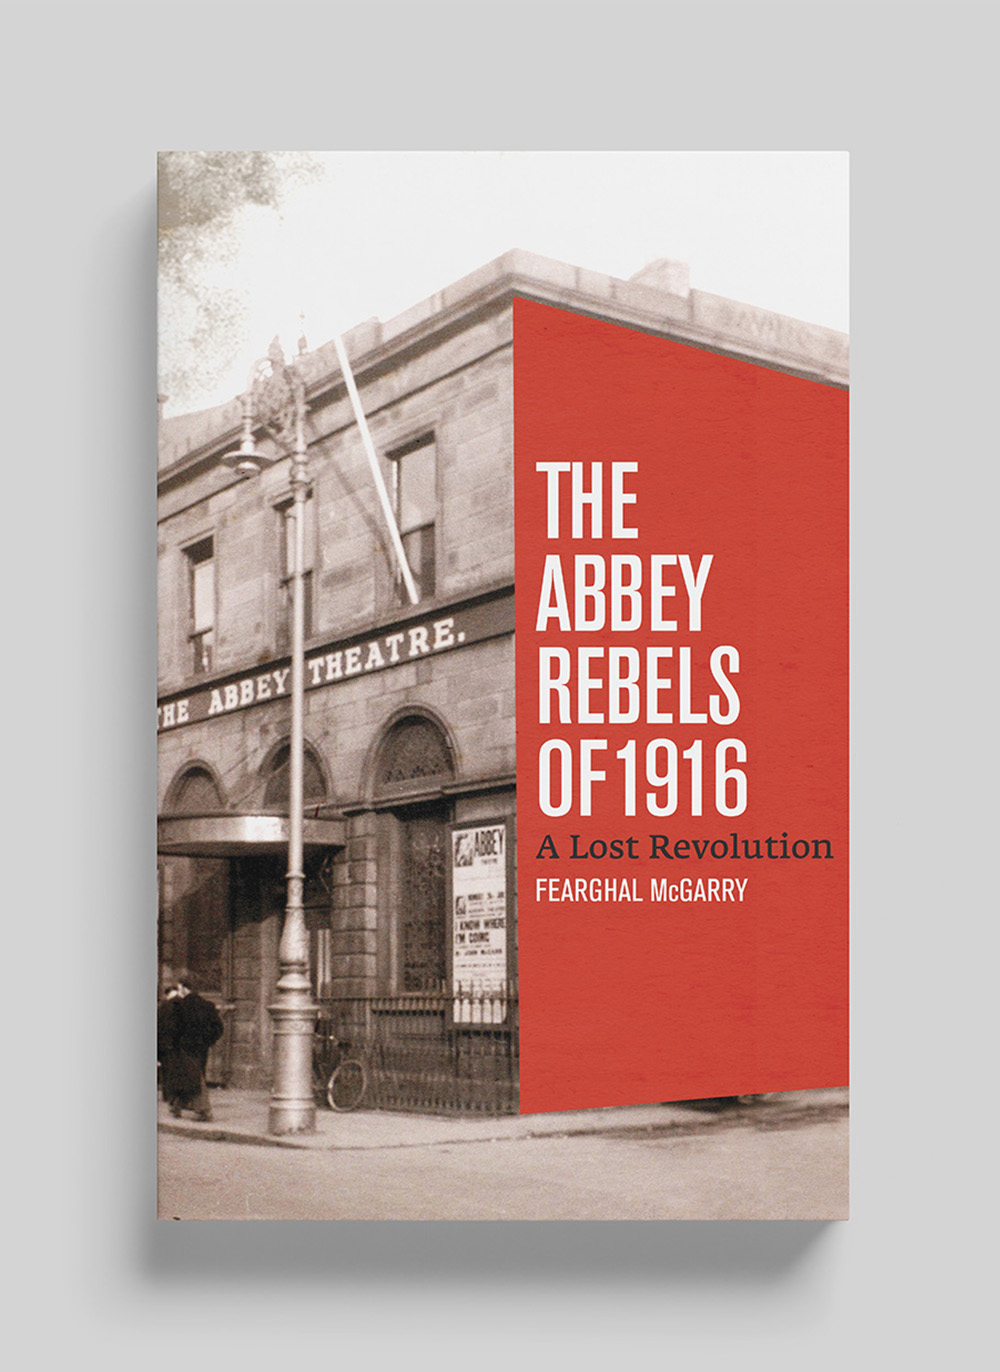 The Abbey Rebels book cover